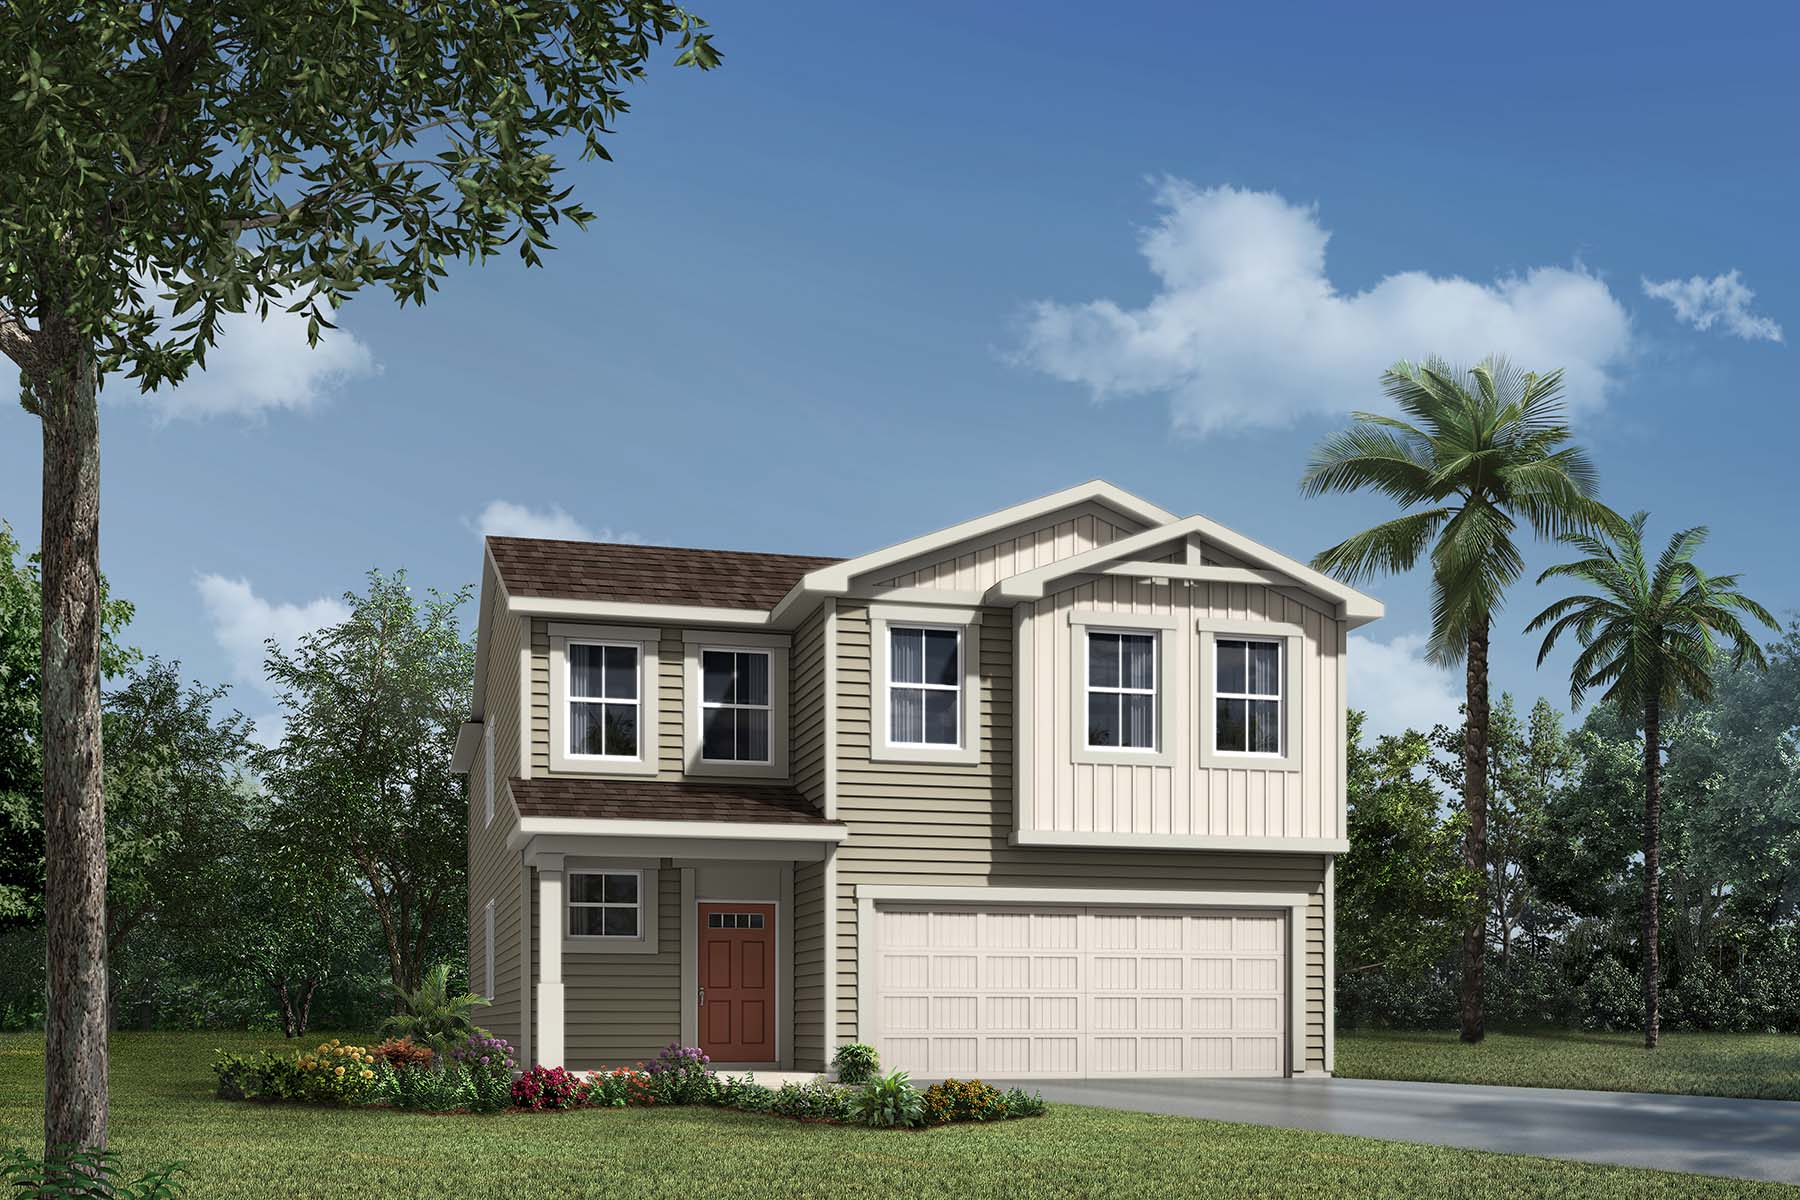 Whitney Plan Elevation Front at RiverTown - Haven in St. Johns Florida by Mattamy Homes